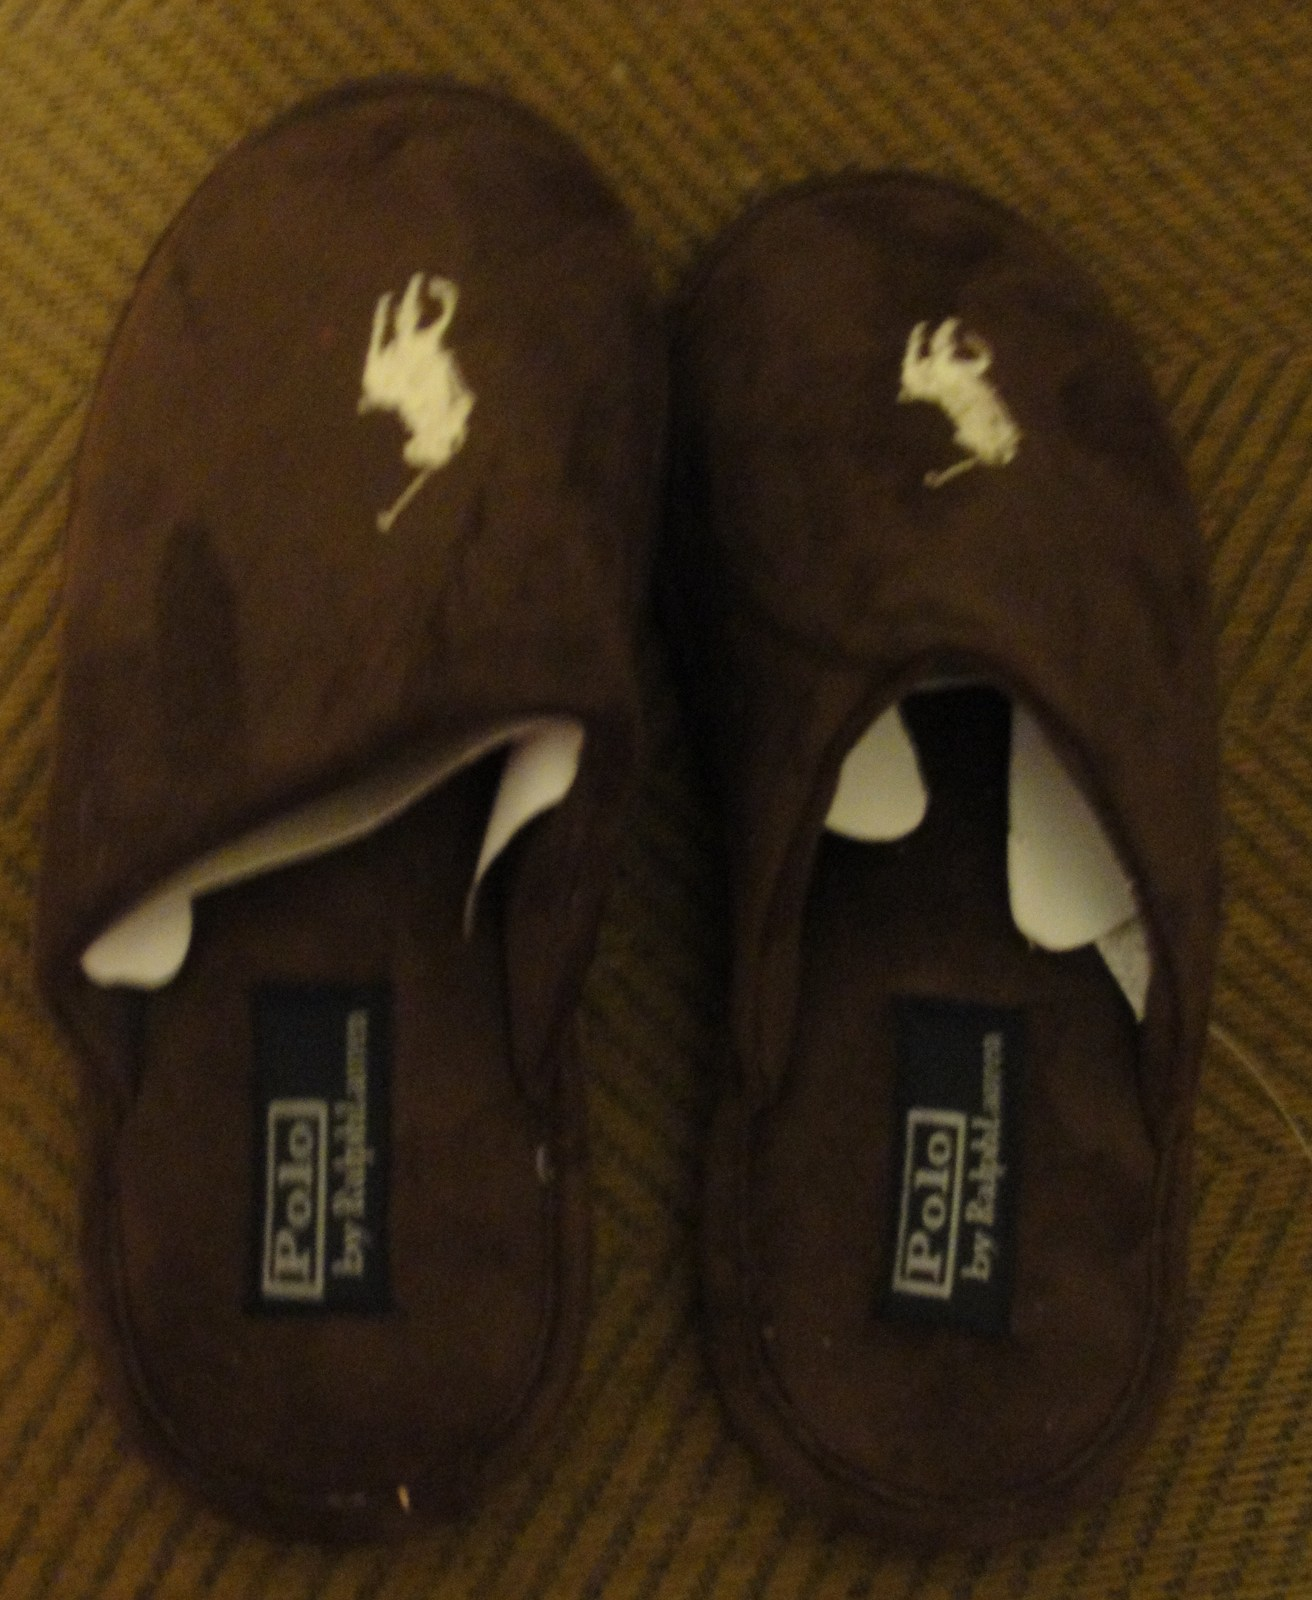 POLO RALPH LAUREN ESTATE MEN'S SLIDE SLIPPERS SIZE-8M COLOR-BROWN SOLID NEW W T.